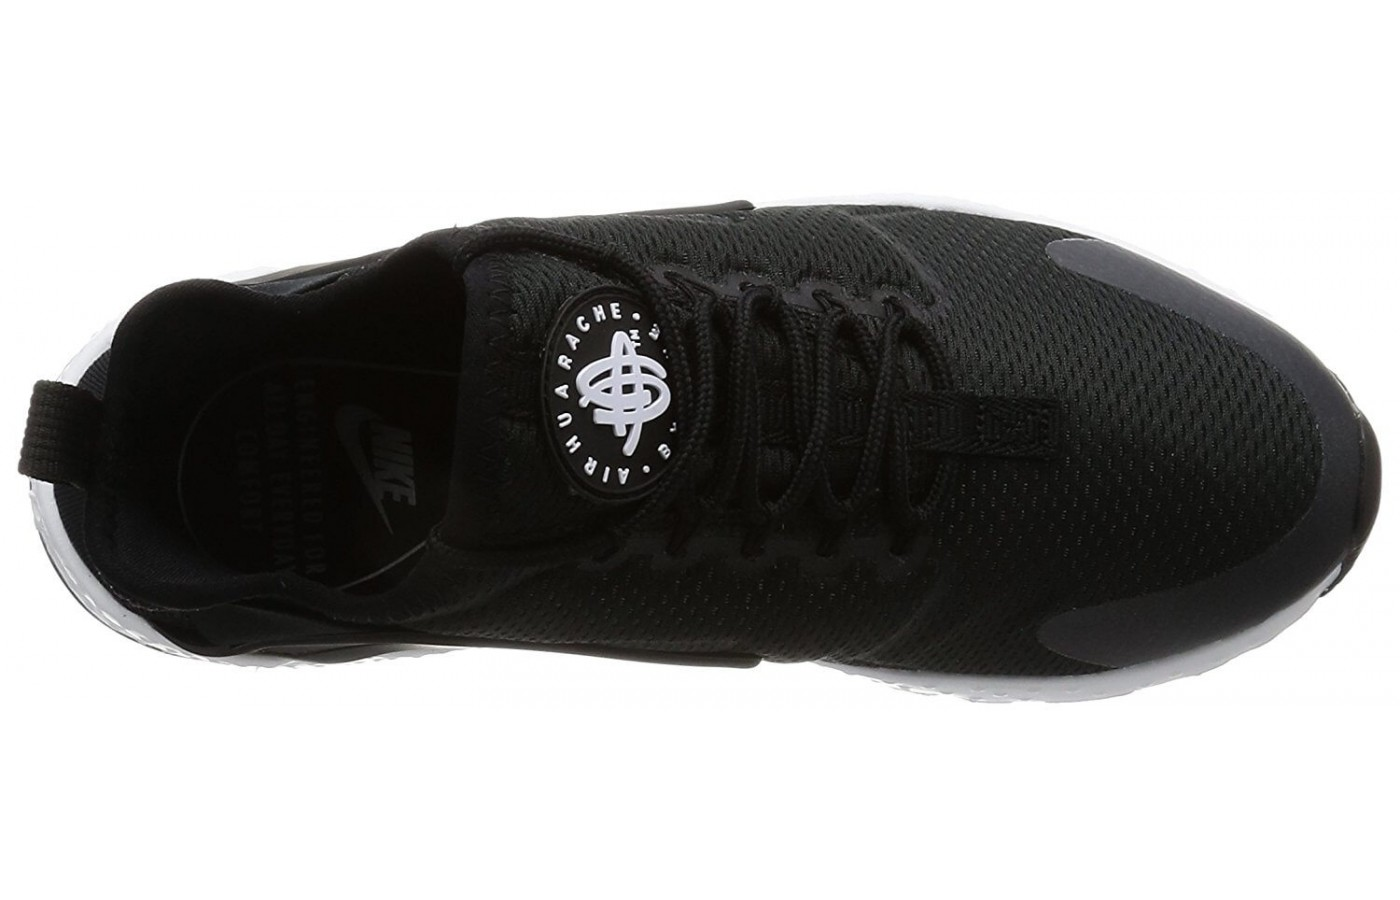 The upper portion of the Nike Air Huarache Ultra is made from layers of breathable mesh fabric.